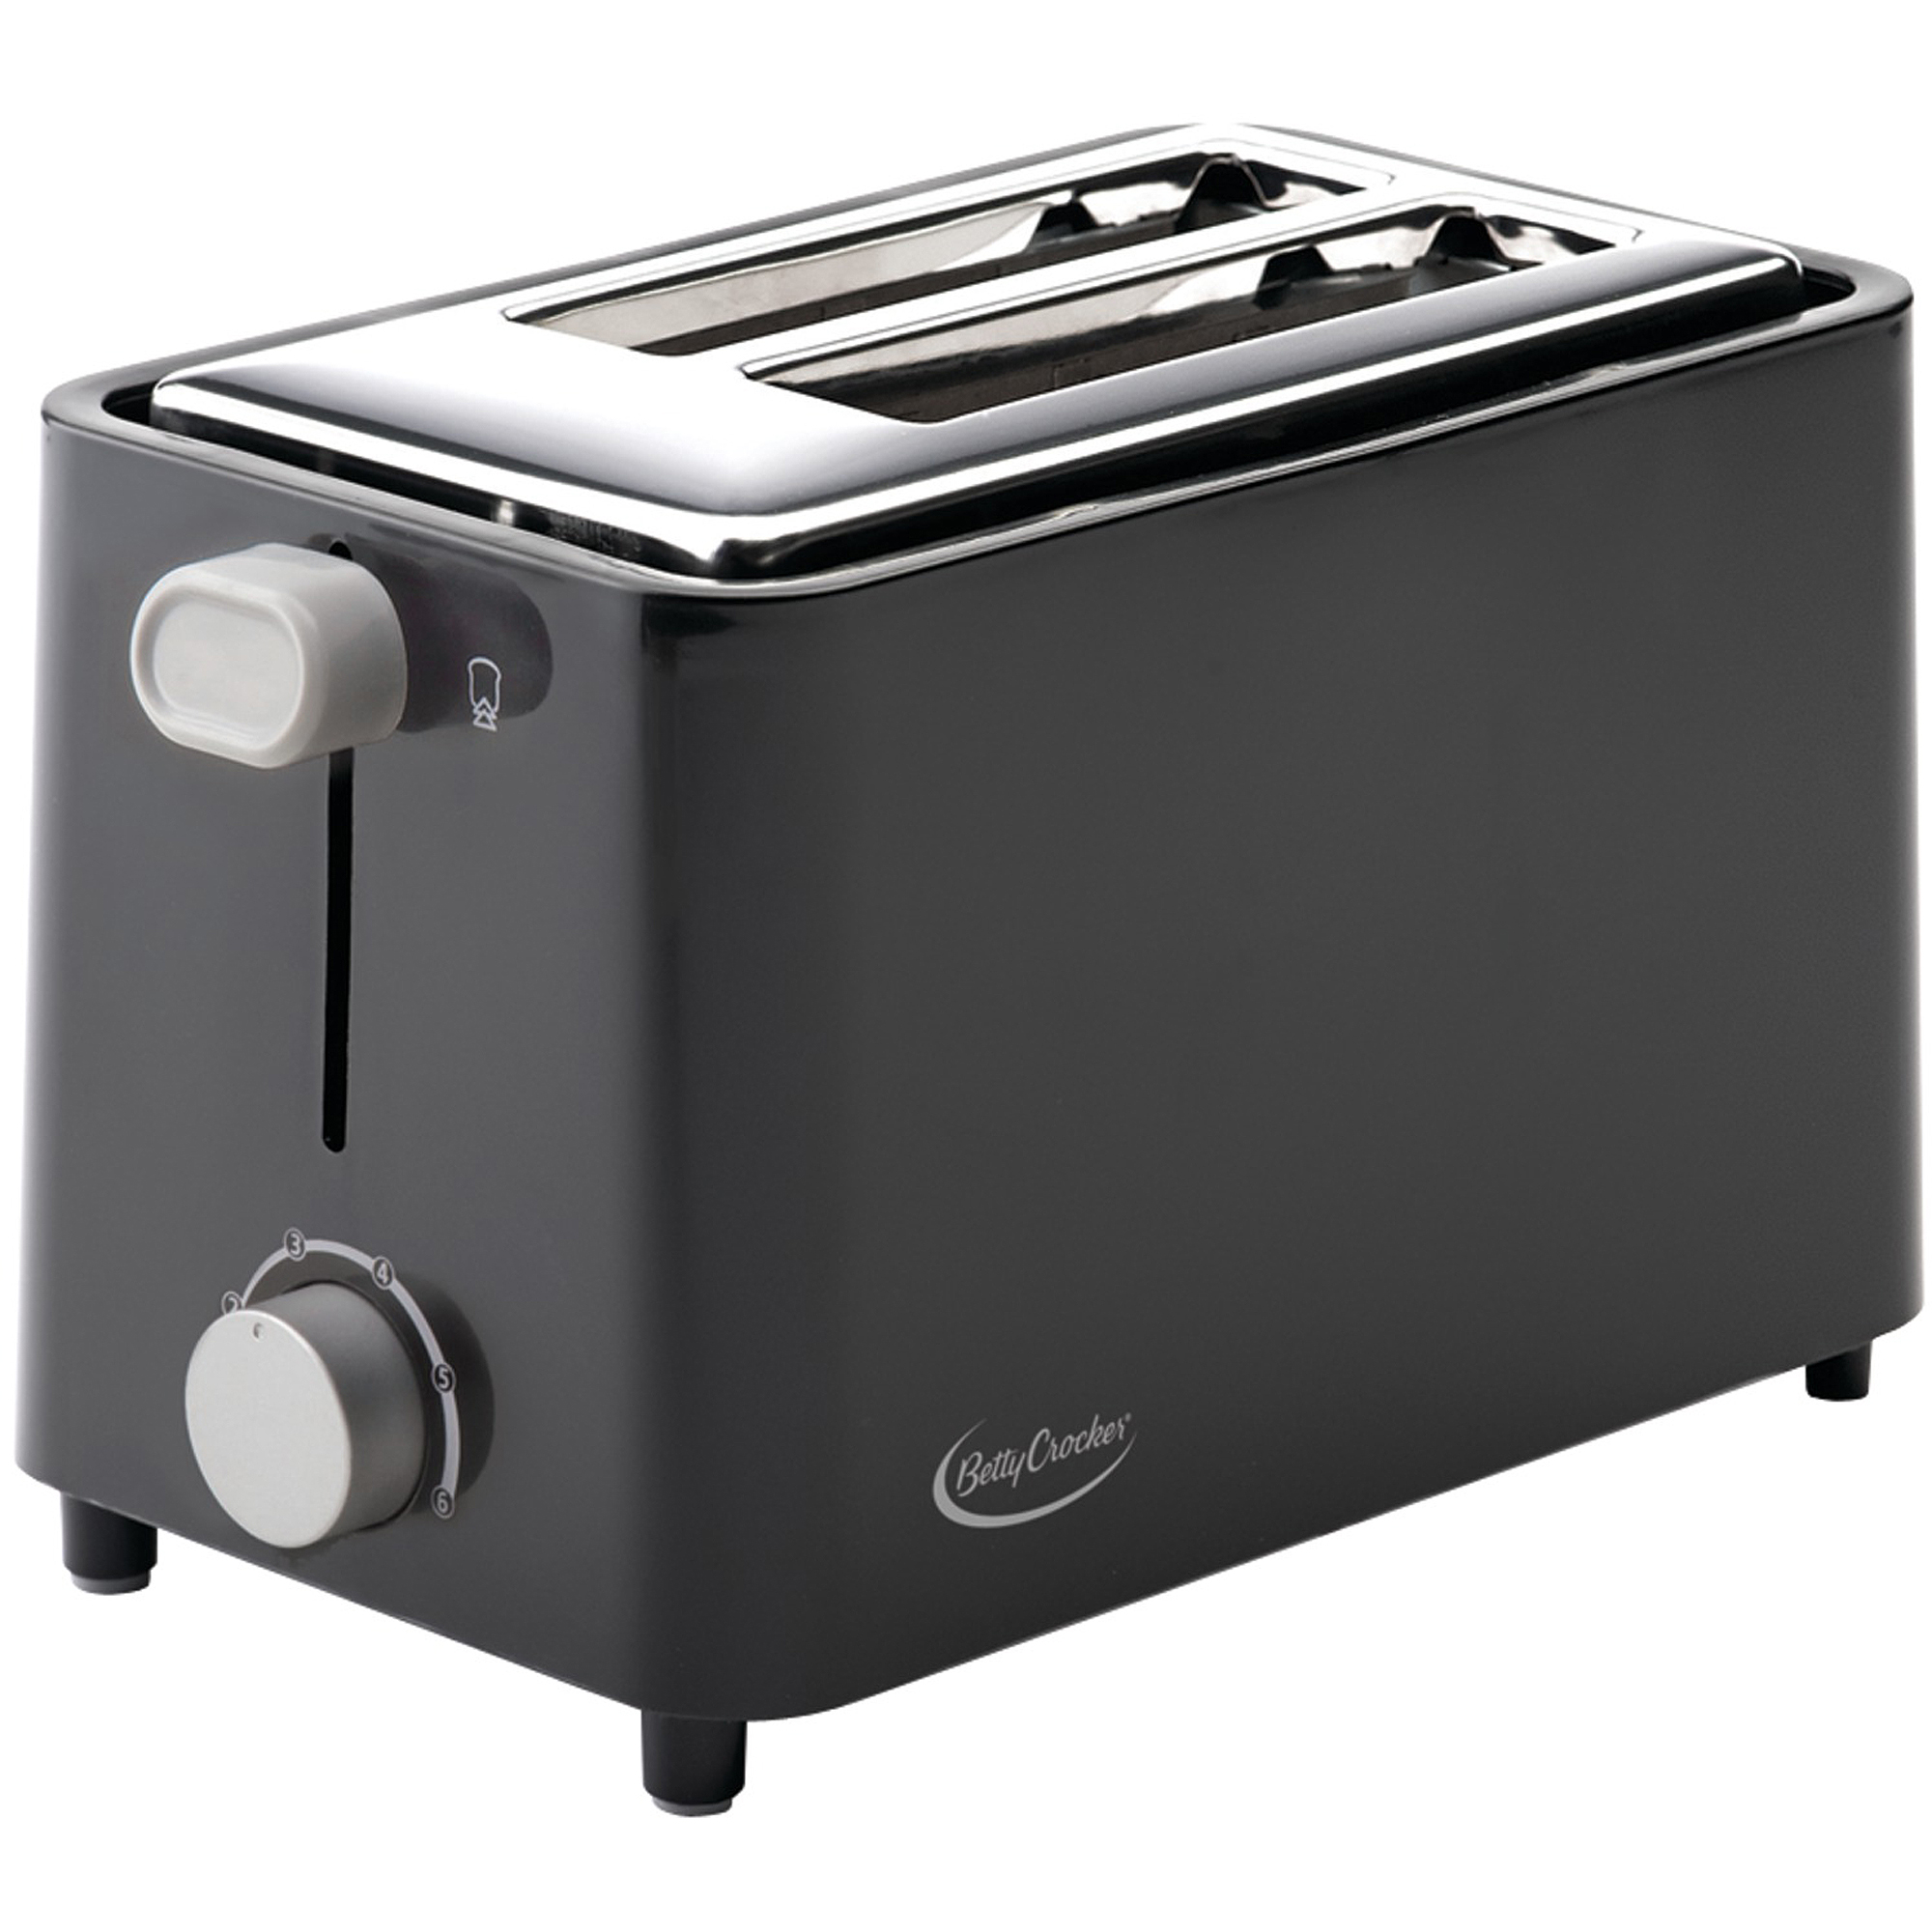 Betty Crocker 2-Slice Toaster, Black by BETTY CROCKER